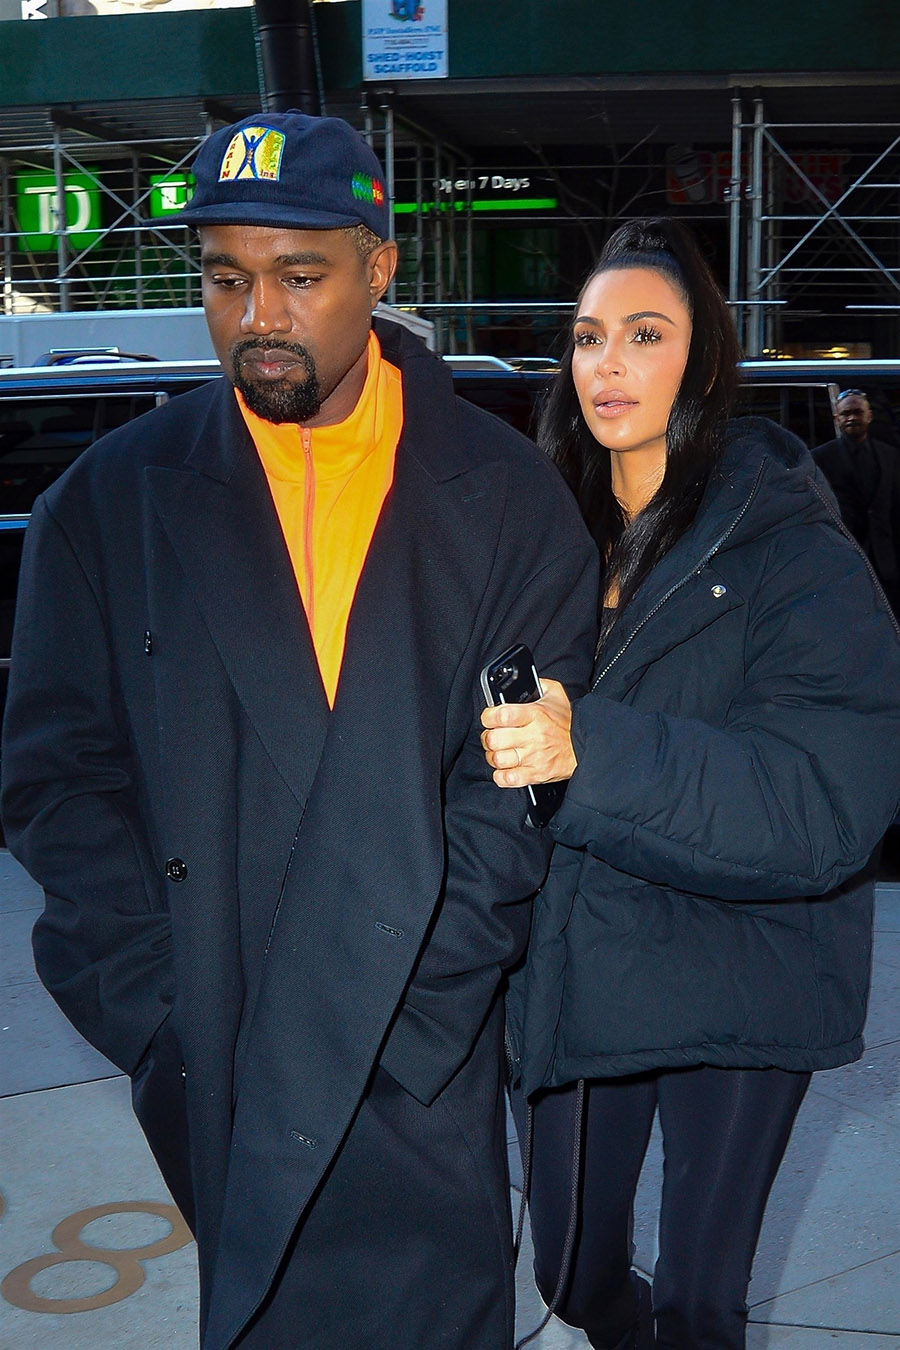 55d93f0b1cf0 Hollywood power couple Kim Kardashian West and Kanye West match their dark  colors as they exit a fancy NYC hotel on this chilly NYC Morning.